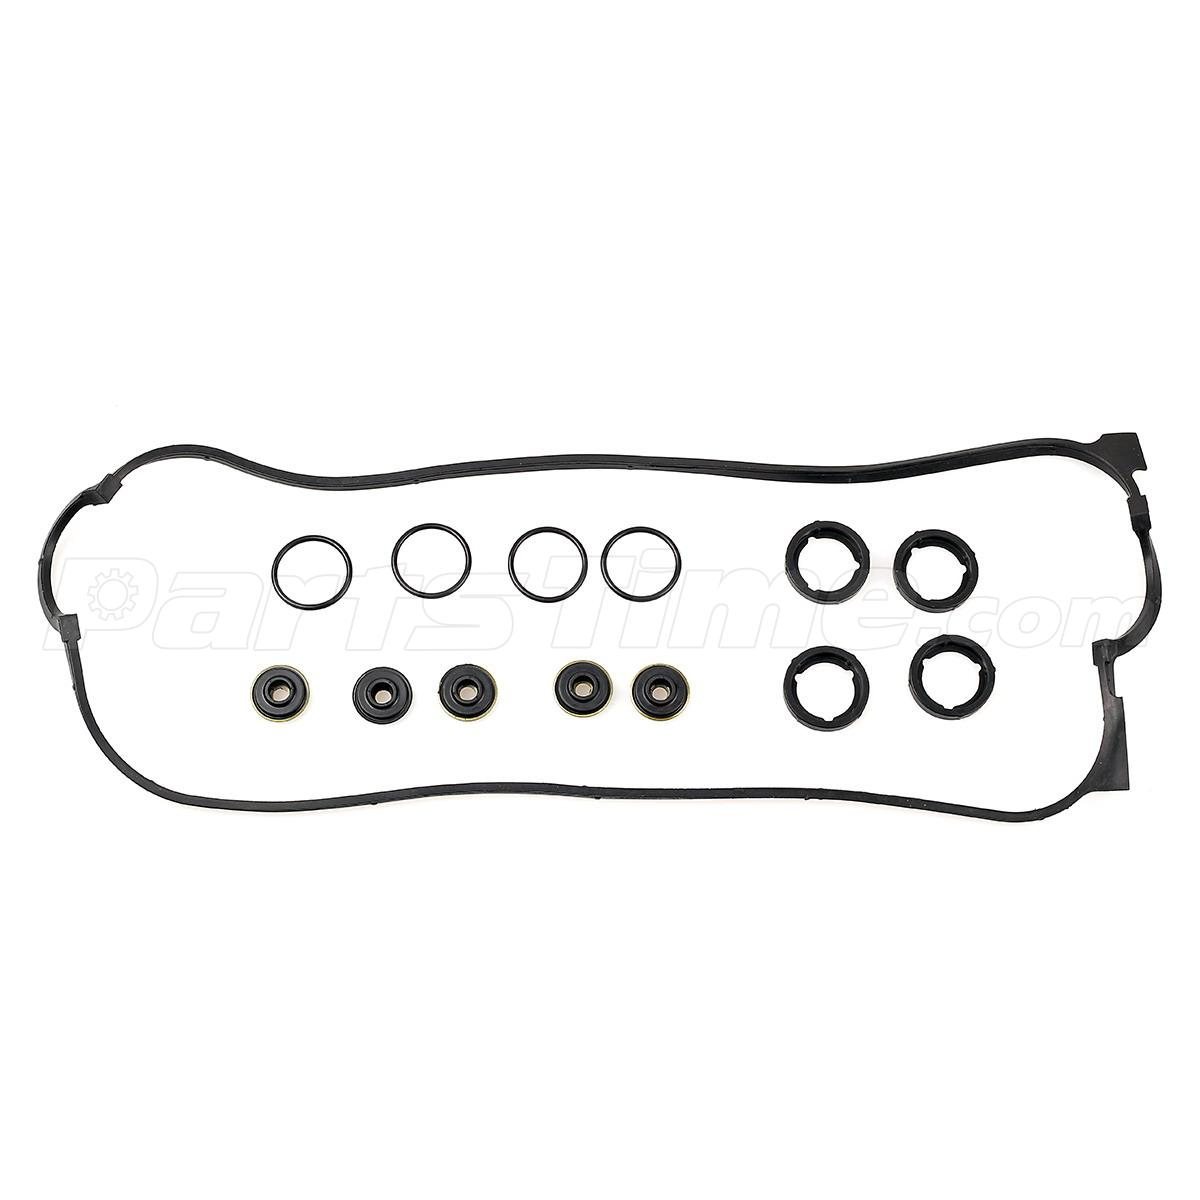 New Valve Cover Gaskets For 90 98 Honda Accord Prelude